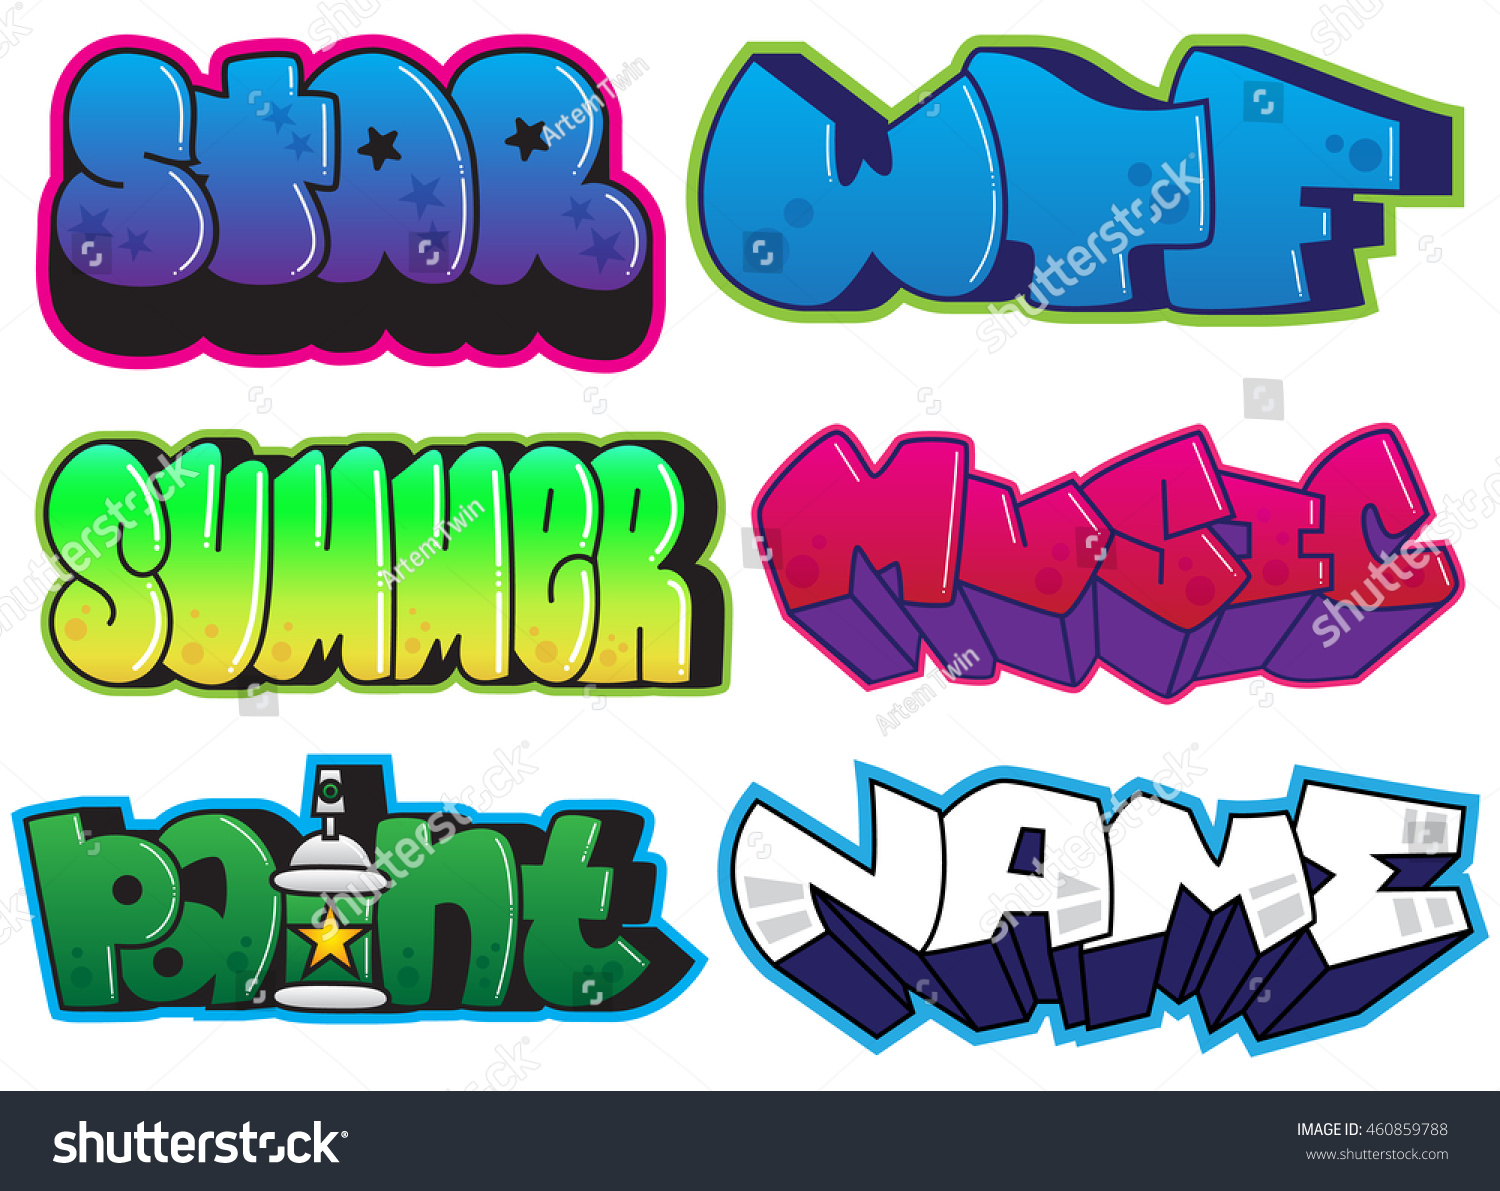 Graffiti set summer star wtf music paint name words